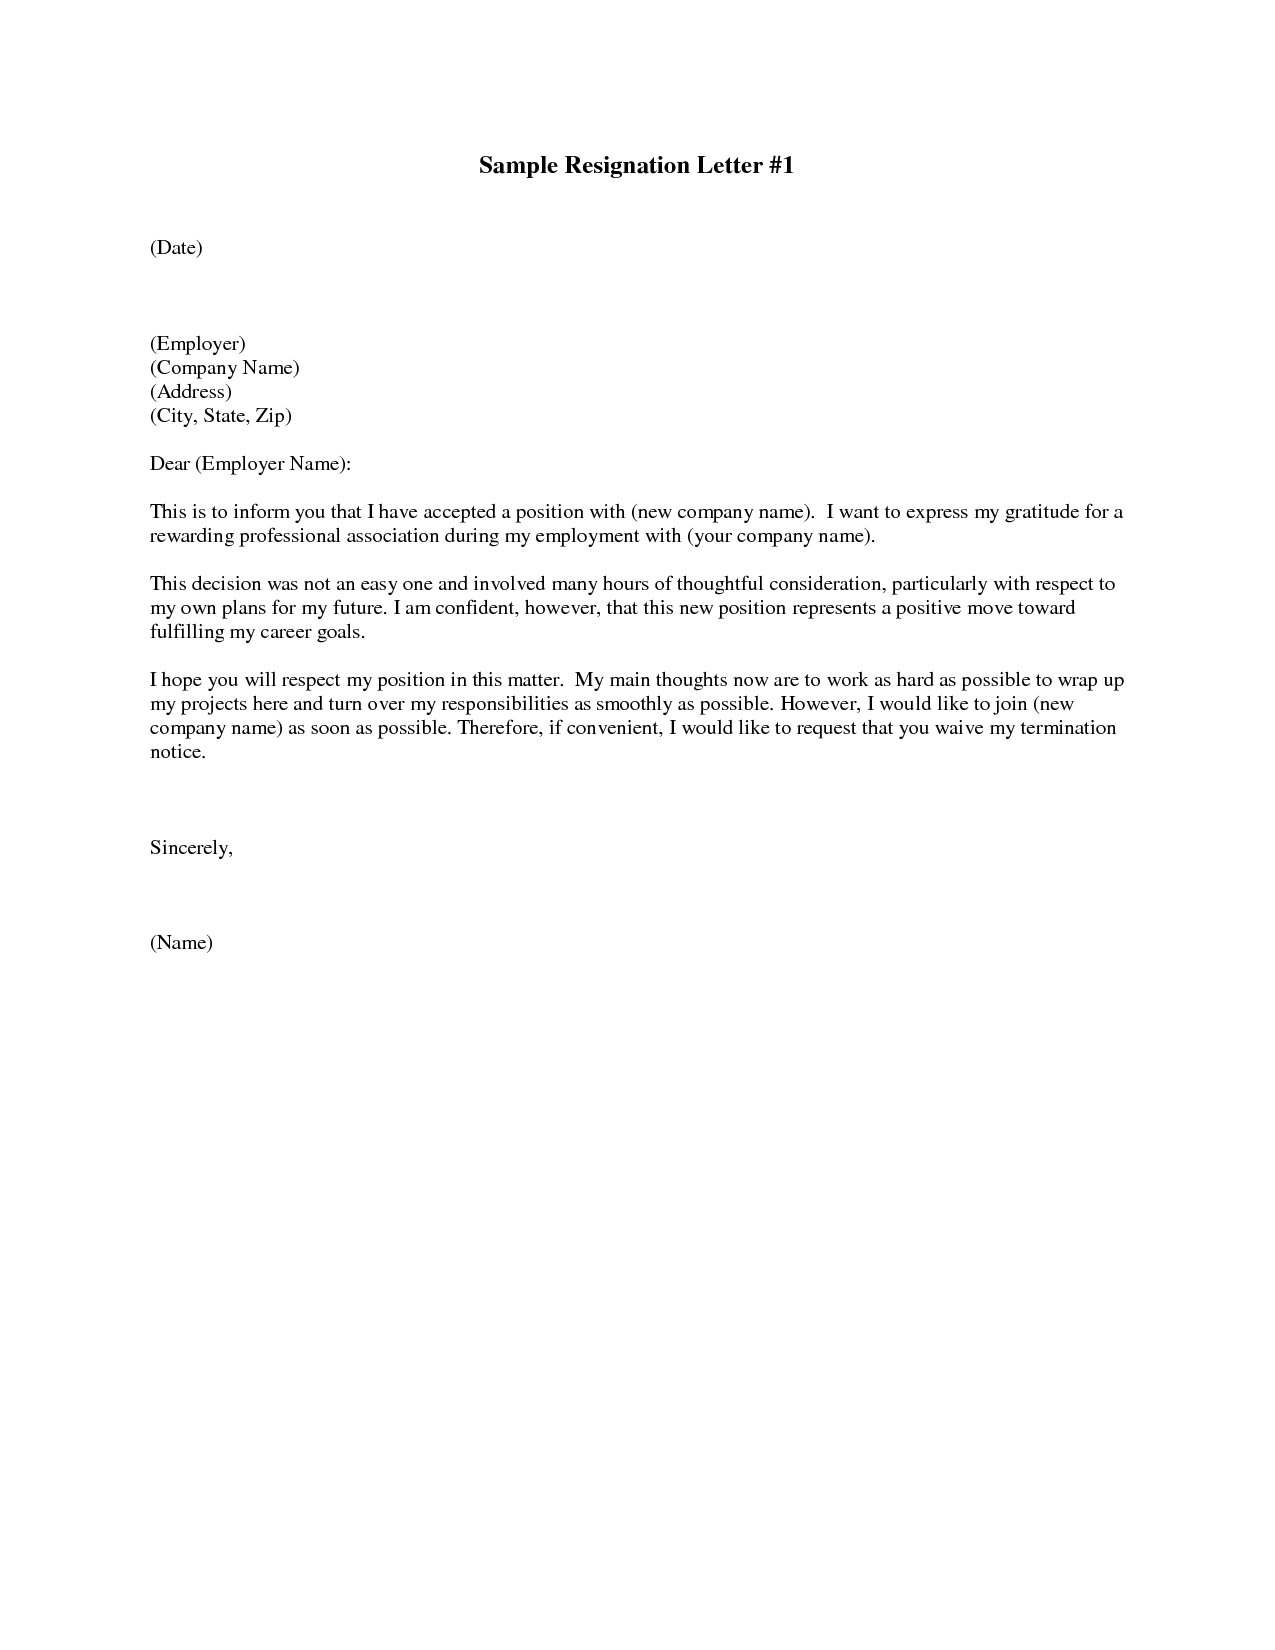 10 Simple Resume Letter of Resignation Sample ...